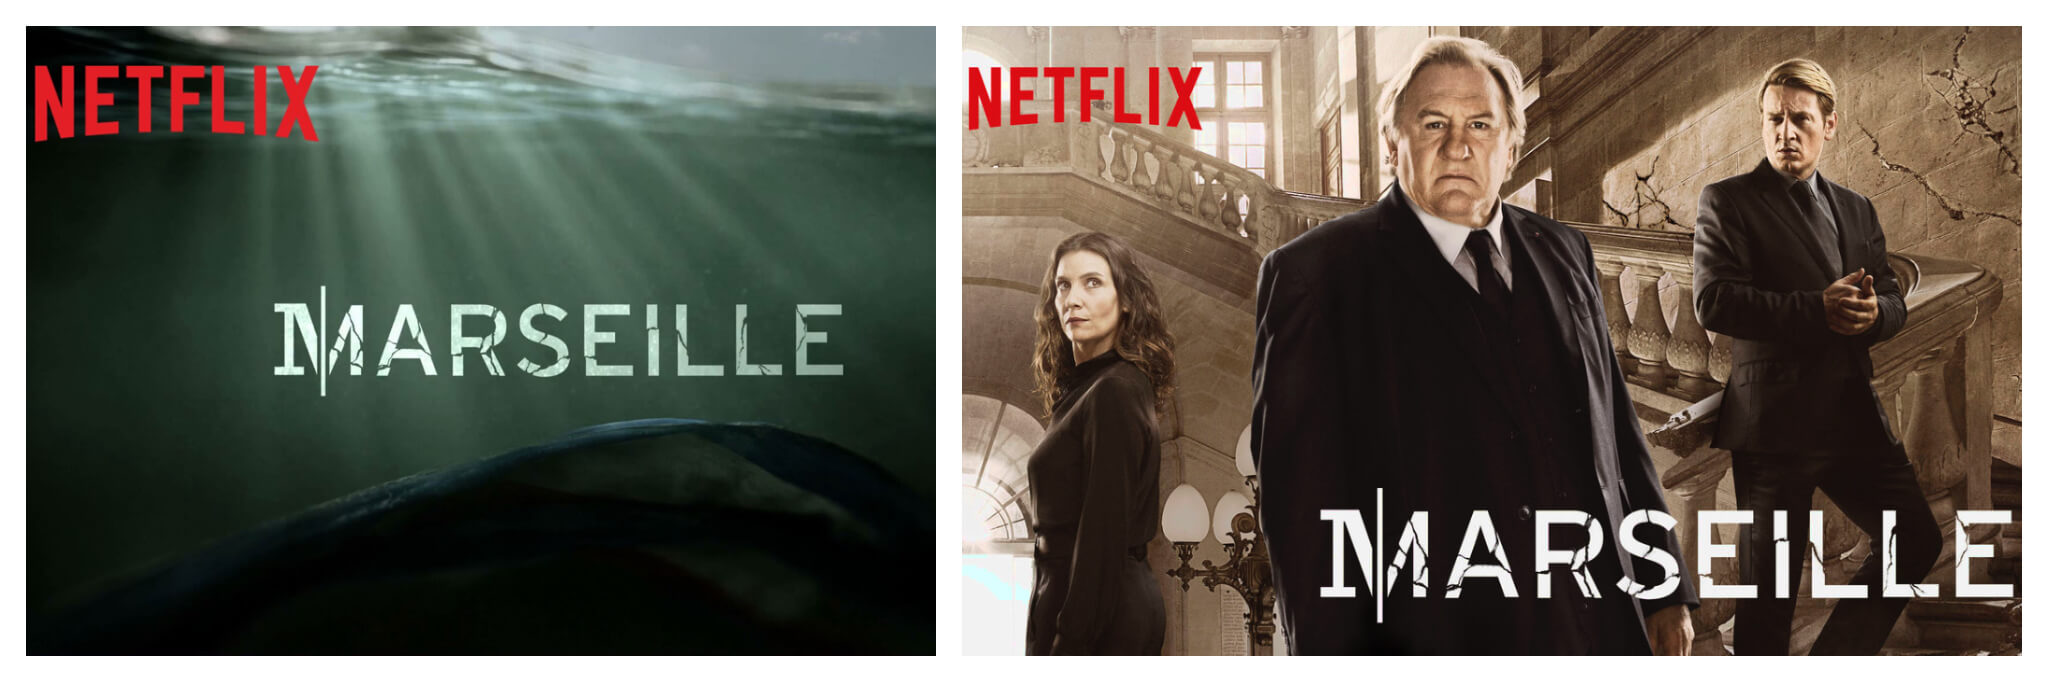 Left and right, posters for French Netflix series Marseille with Gérard Depardieu, the perfect antidote to staying at home while on lockdown.